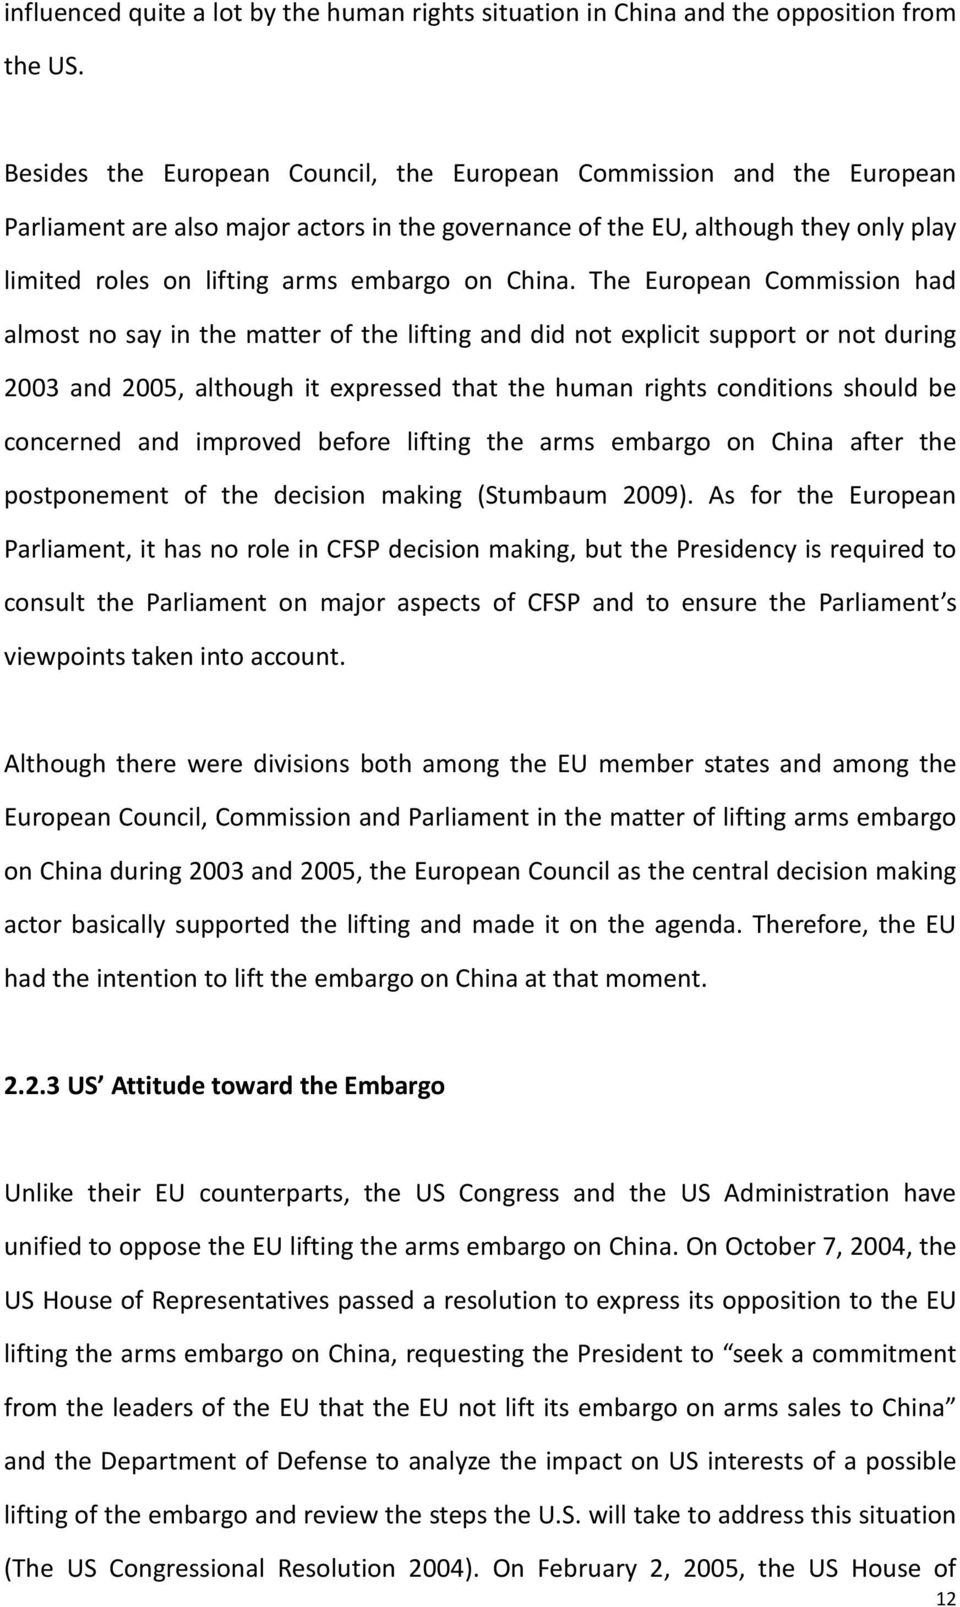 The Euroean Commission had almost no say in the matter of the lifting and did not elicit suort or not during 2003 and 2005, although it eressed that the human rights conditions should be concerned